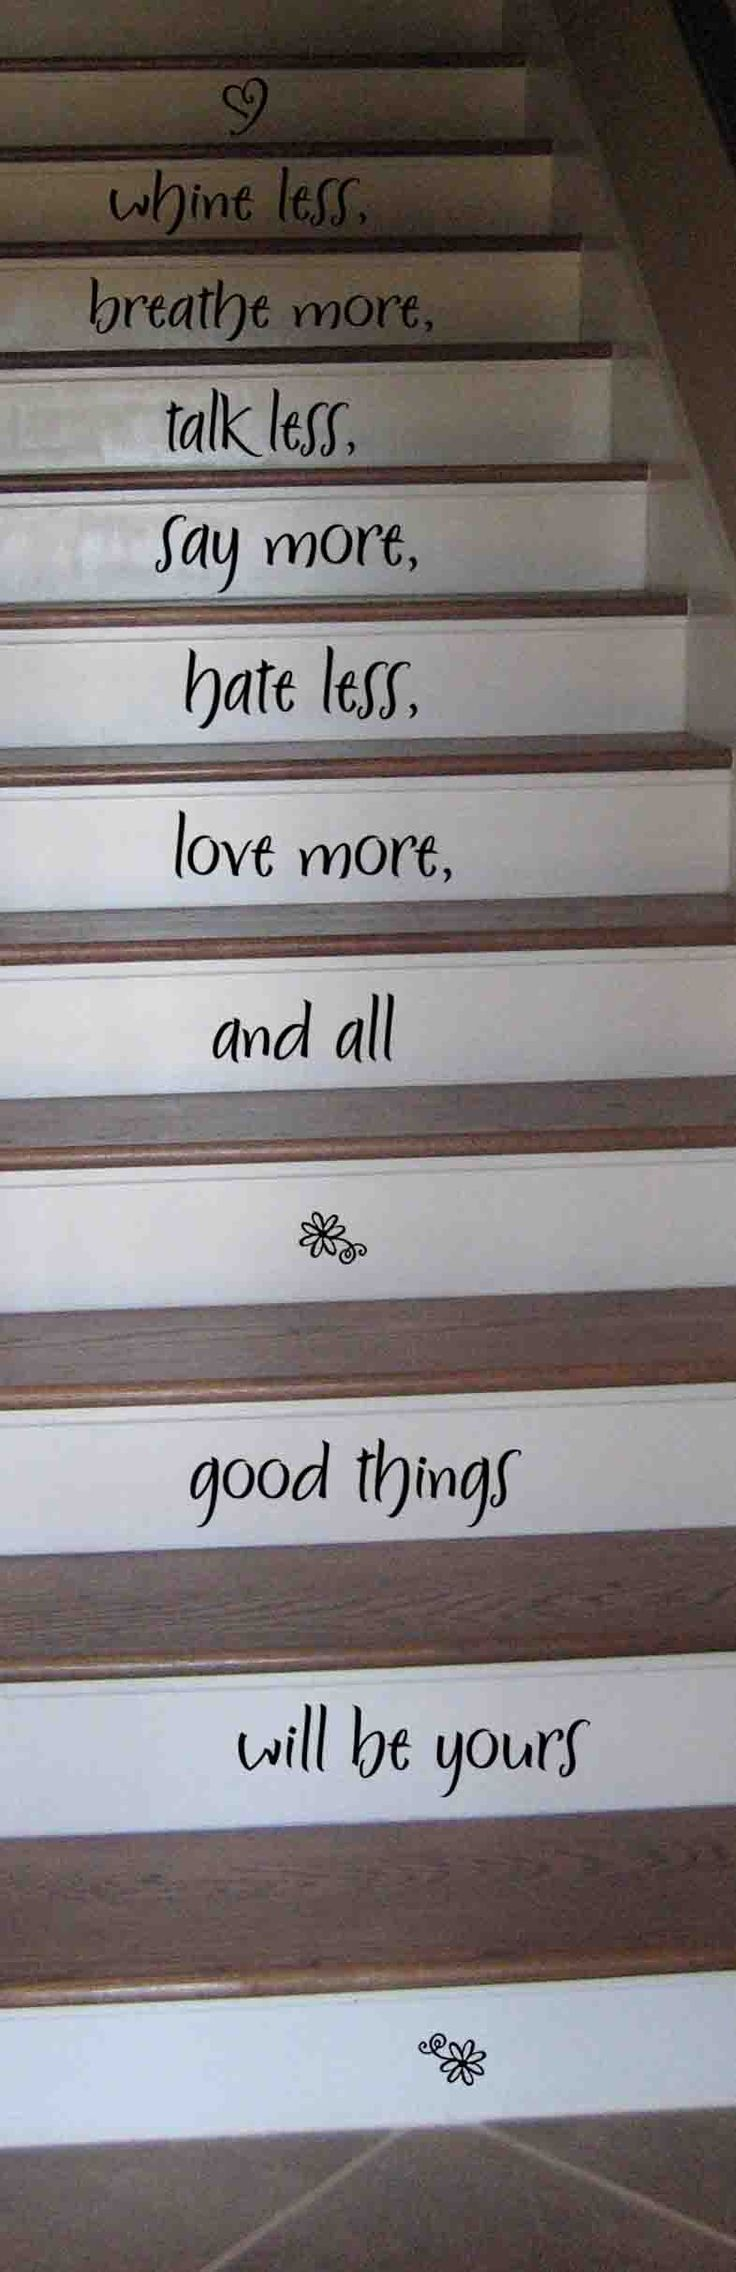 the steps to happiness